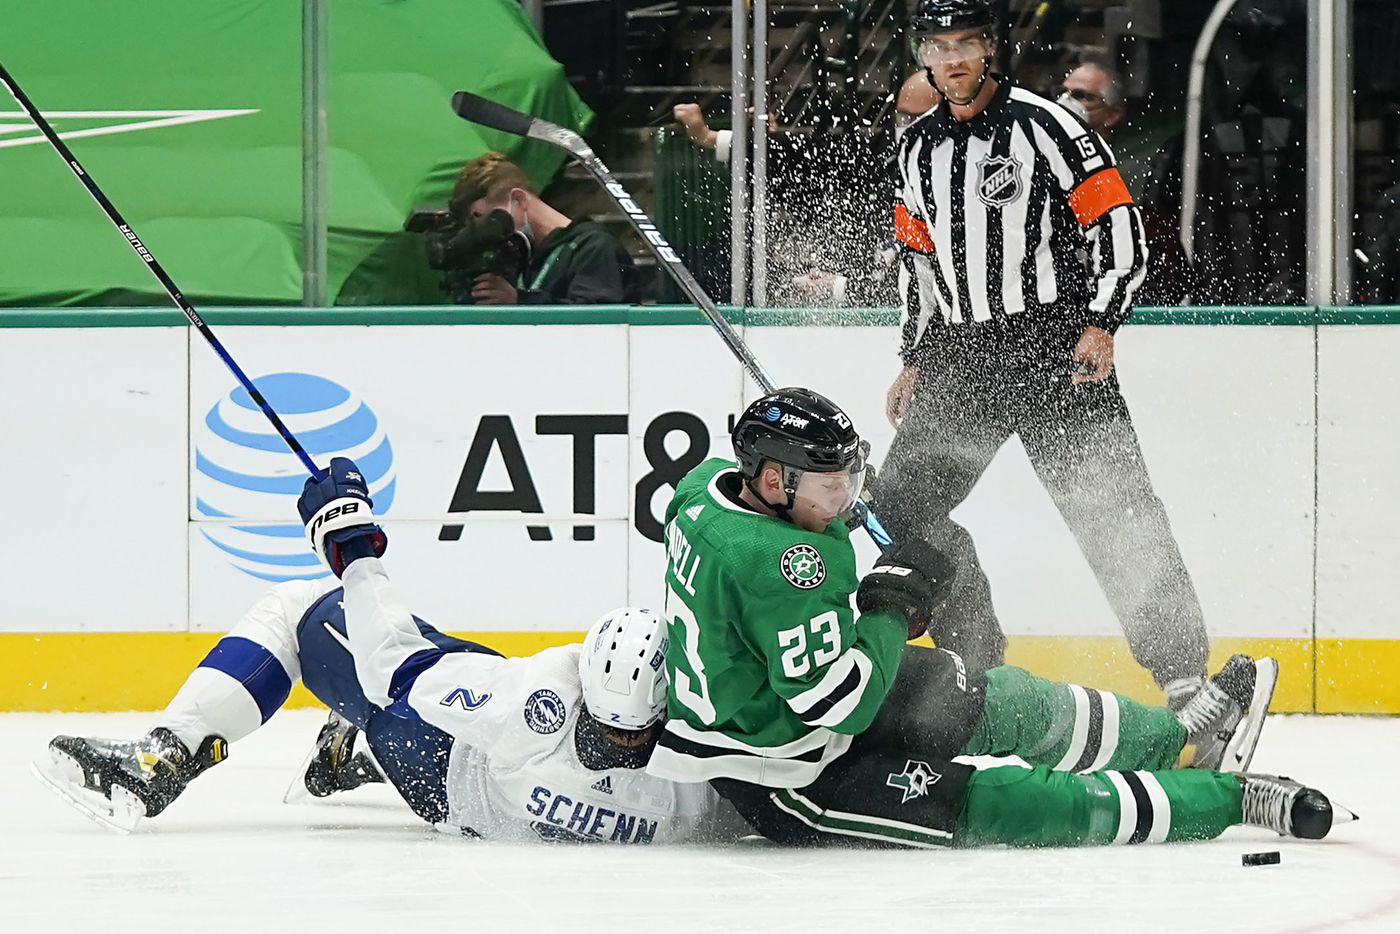 Dallas Stars defenseman Esa Lindell (23) fights for the puck against Tampa Bay Lightning defenseman Luke Schenn (2) as they hit the ice during the second period of an NHL hockey game at the American Airlines Center on Thursday, March 25, 2021, in Dallas. (Smiley N. Pool/The Dallas Morning News)